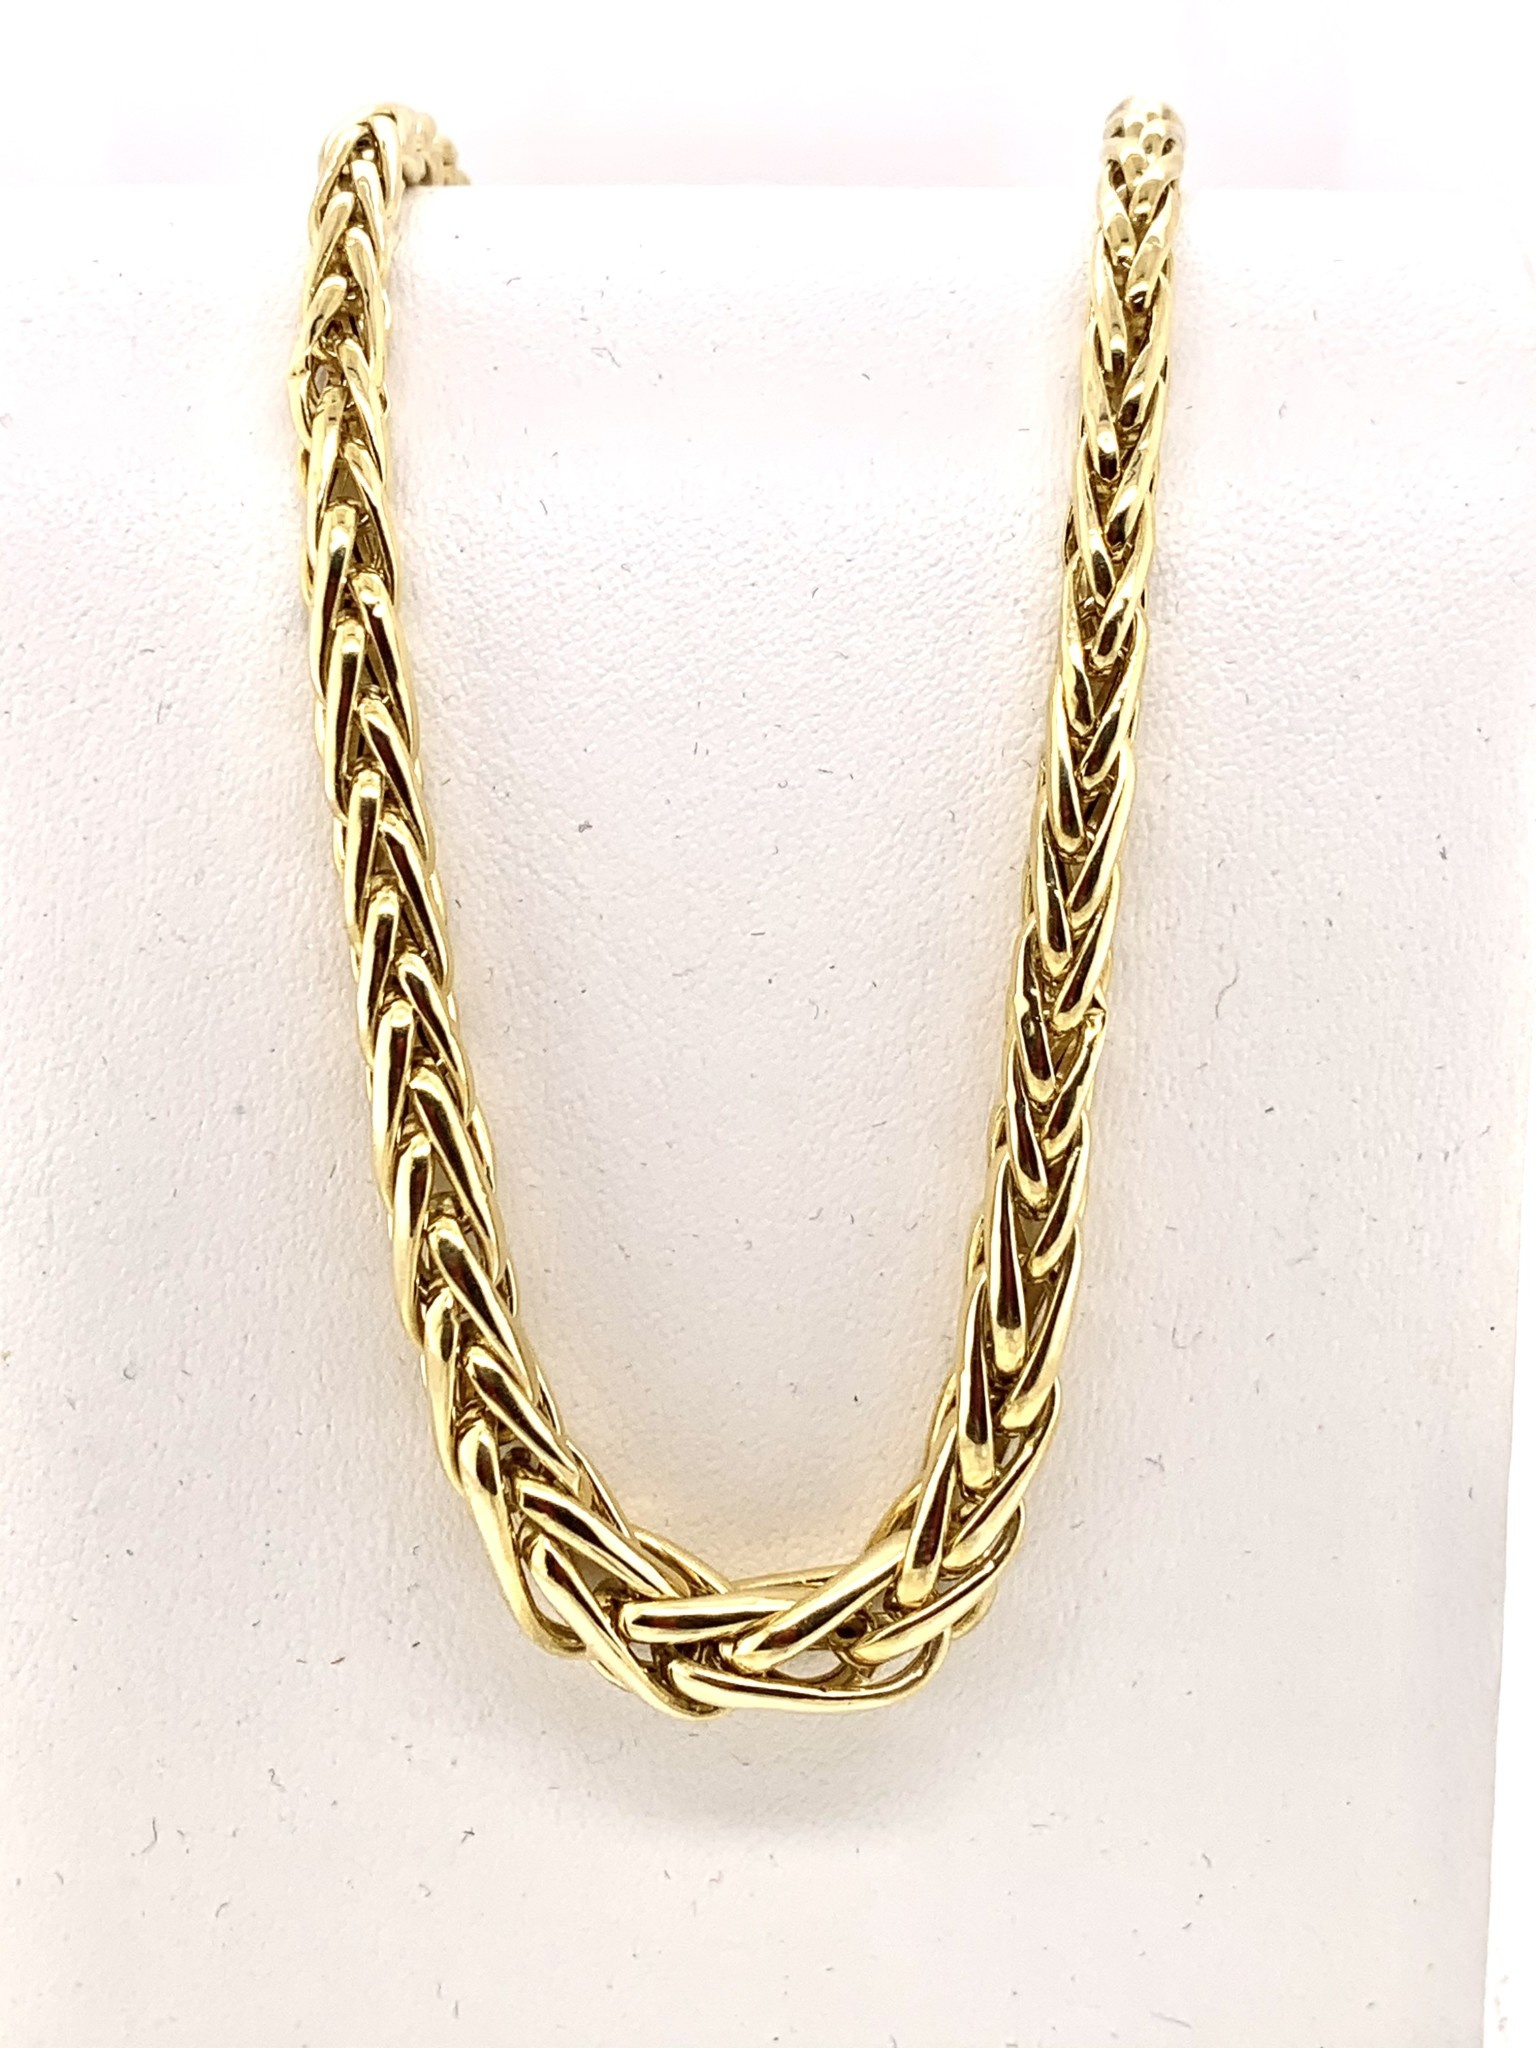 18k yellow gold 17 in chain w/ lobster clasp